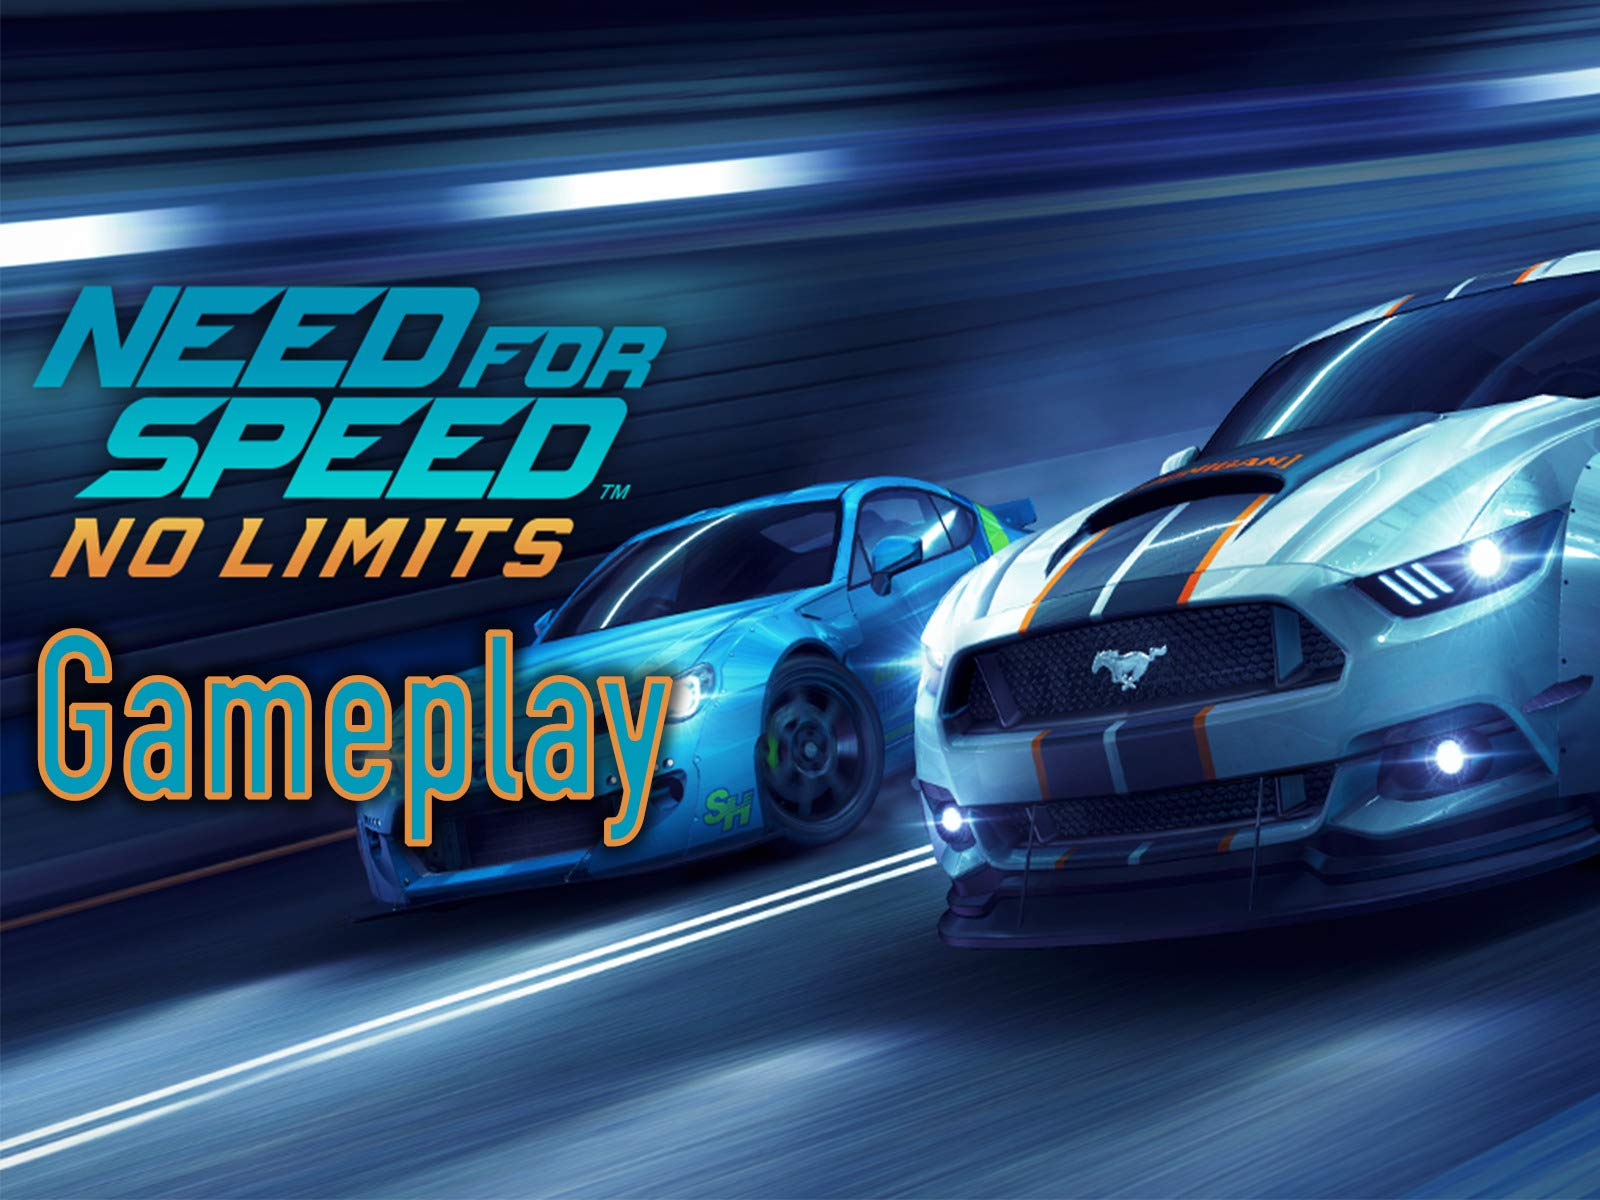 Amazon com: Watch Need For Speed No Limits Gameplay | Prime